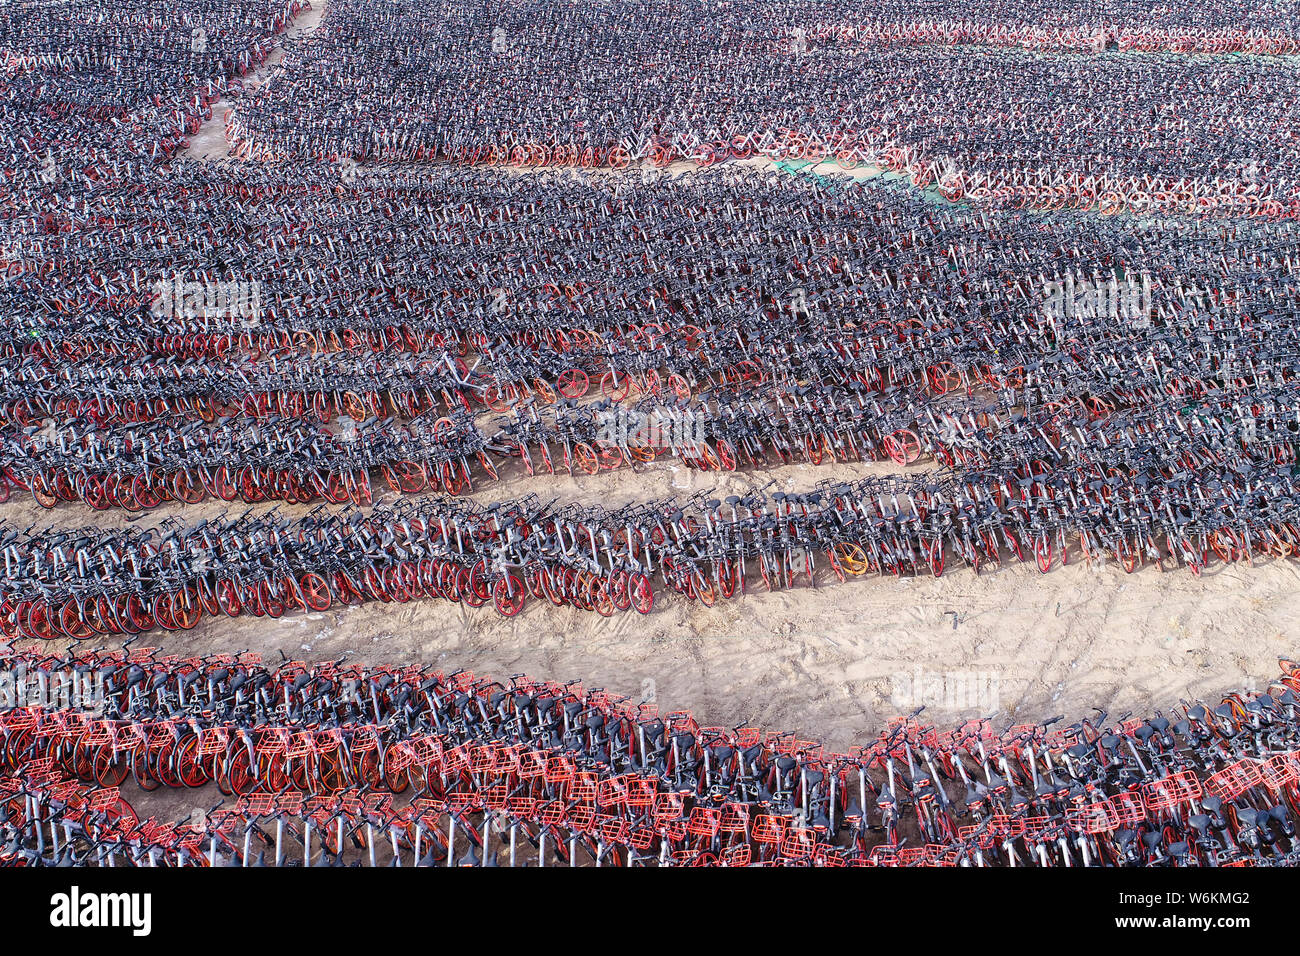 Thousands of bicycles of bike-sharing service Mobike are lined up at an open space in Yinchuan city, northwest China's Ningxia Hui Autonomous Region, Stock Photo